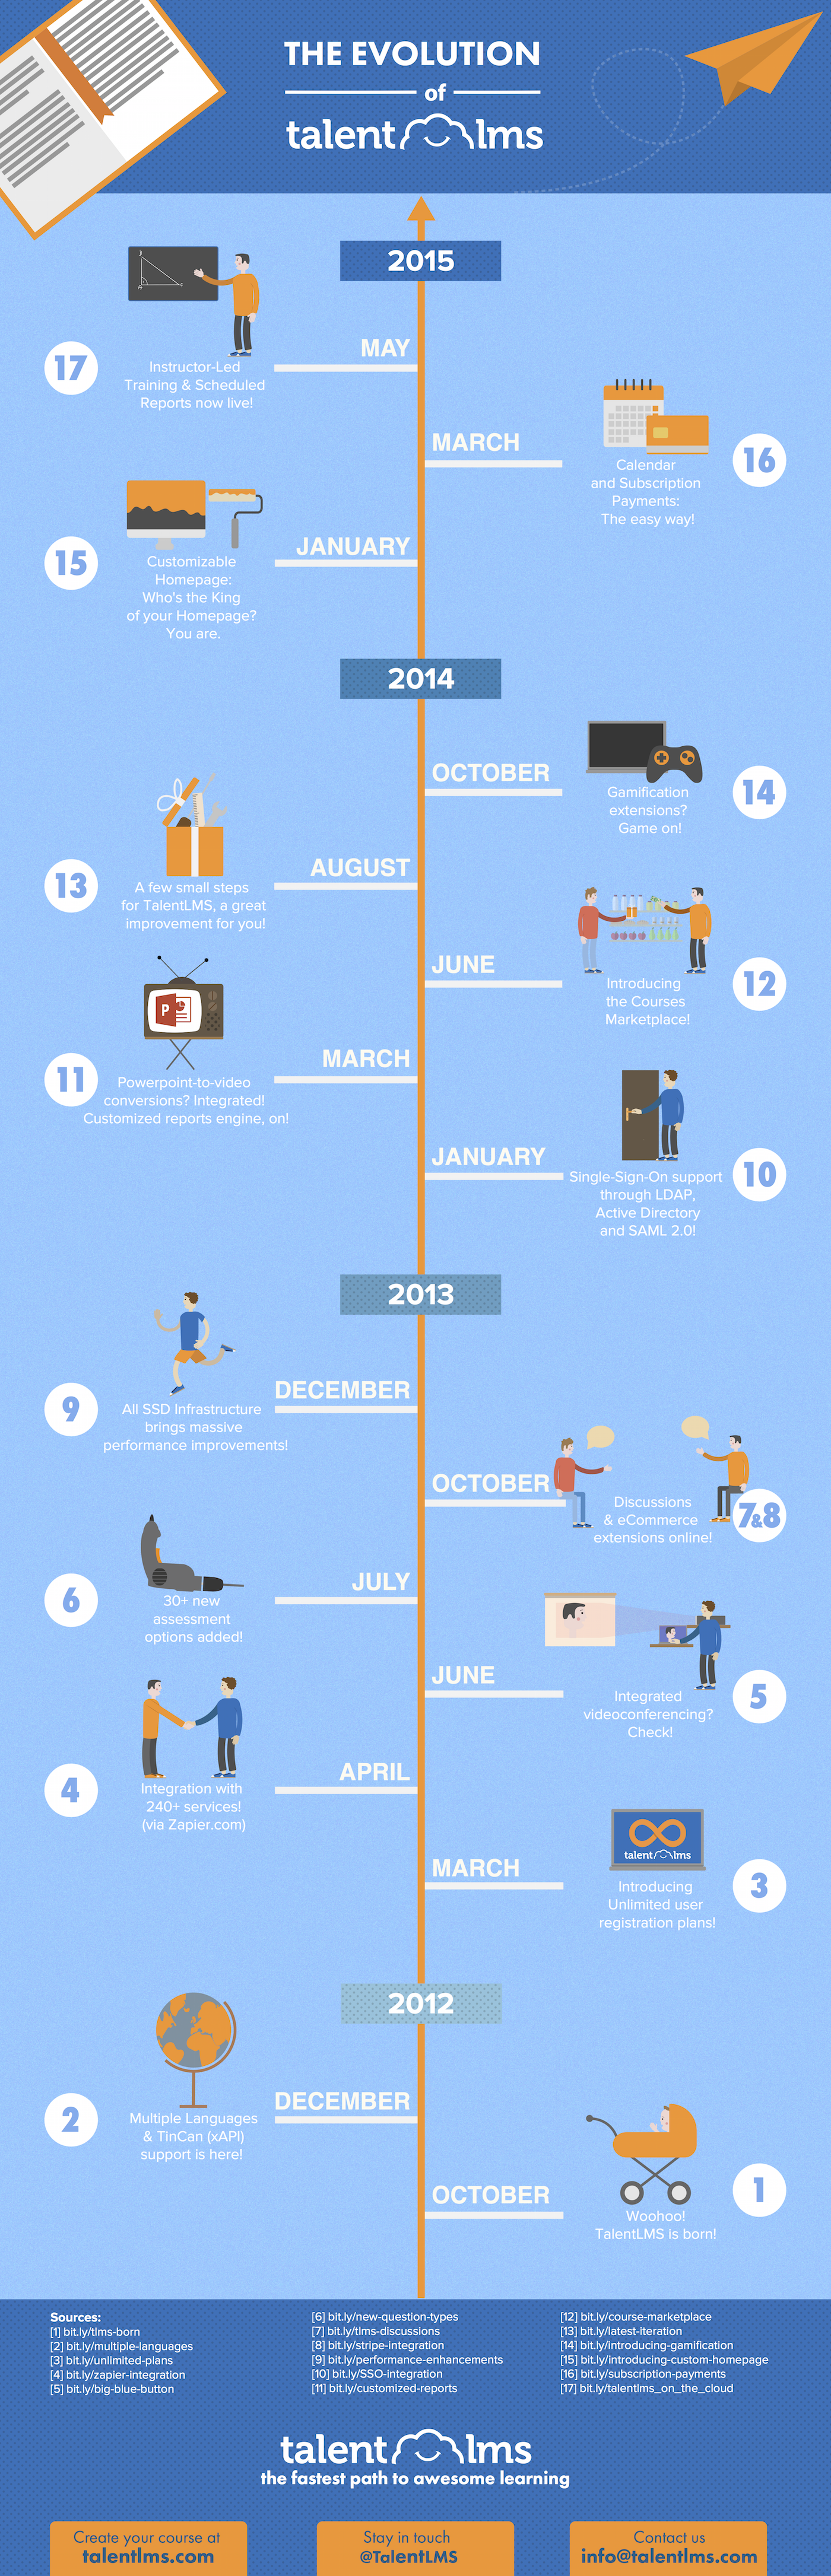 the-evolution-of-talentlms-infographic